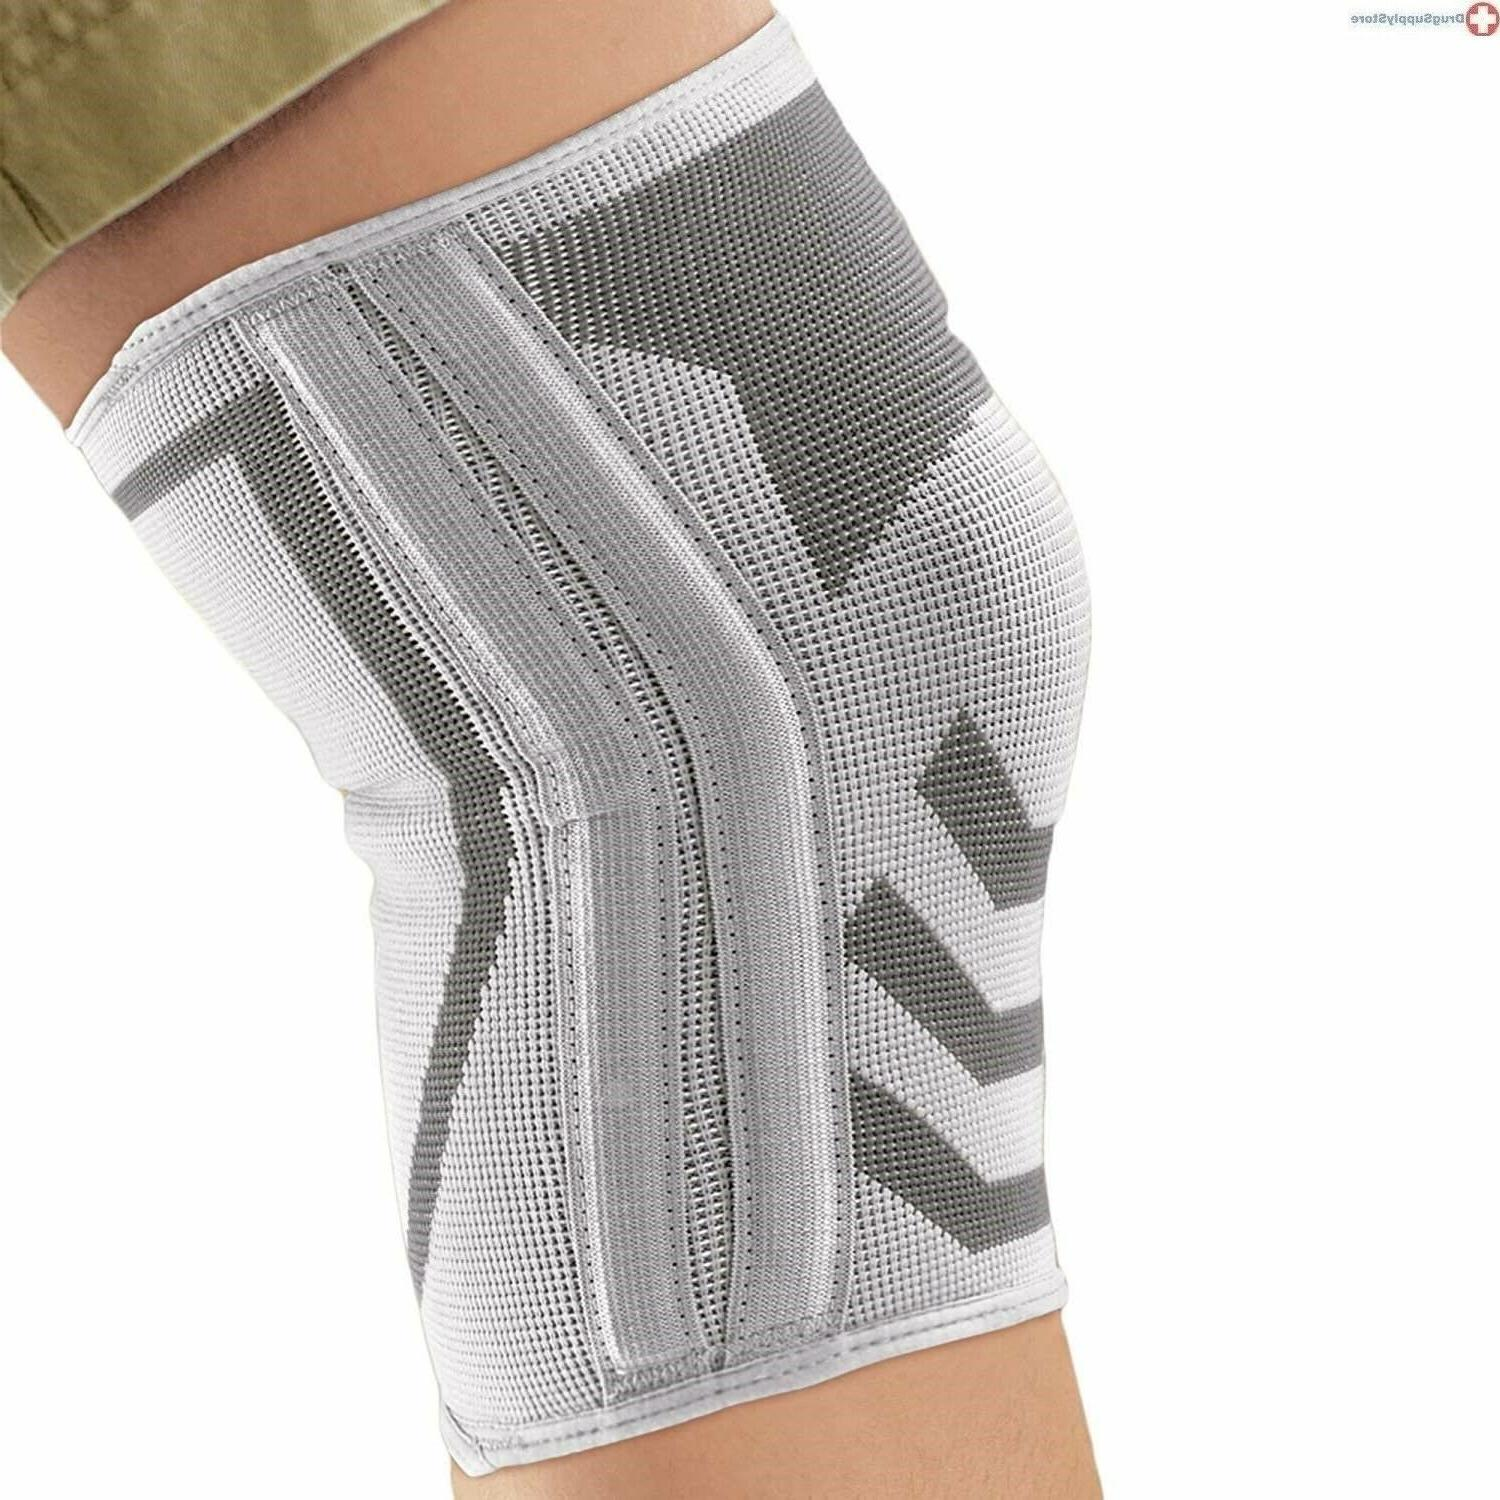 ACE Knitted Knee Brace with Side Stabilizers, Large, America